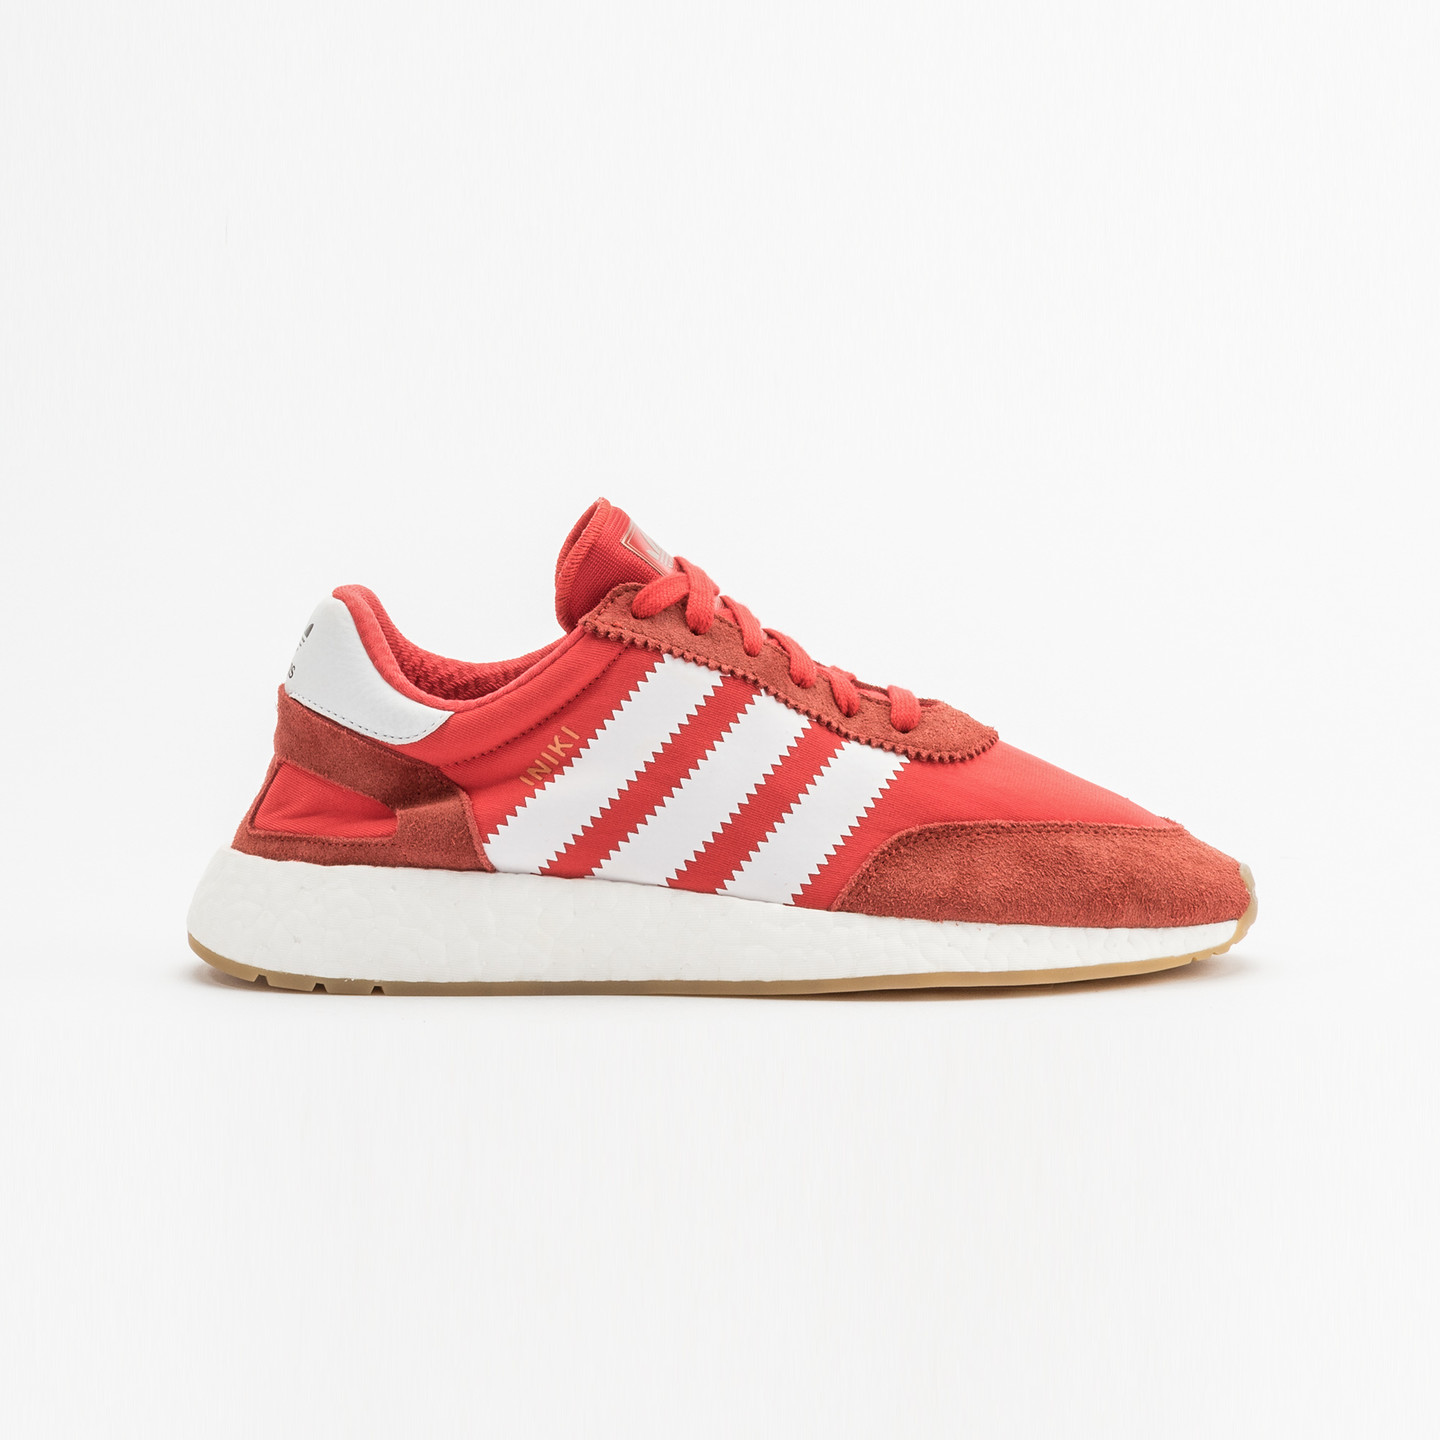 Adidas Iniki Runner Red / Running White / Gum BY9728